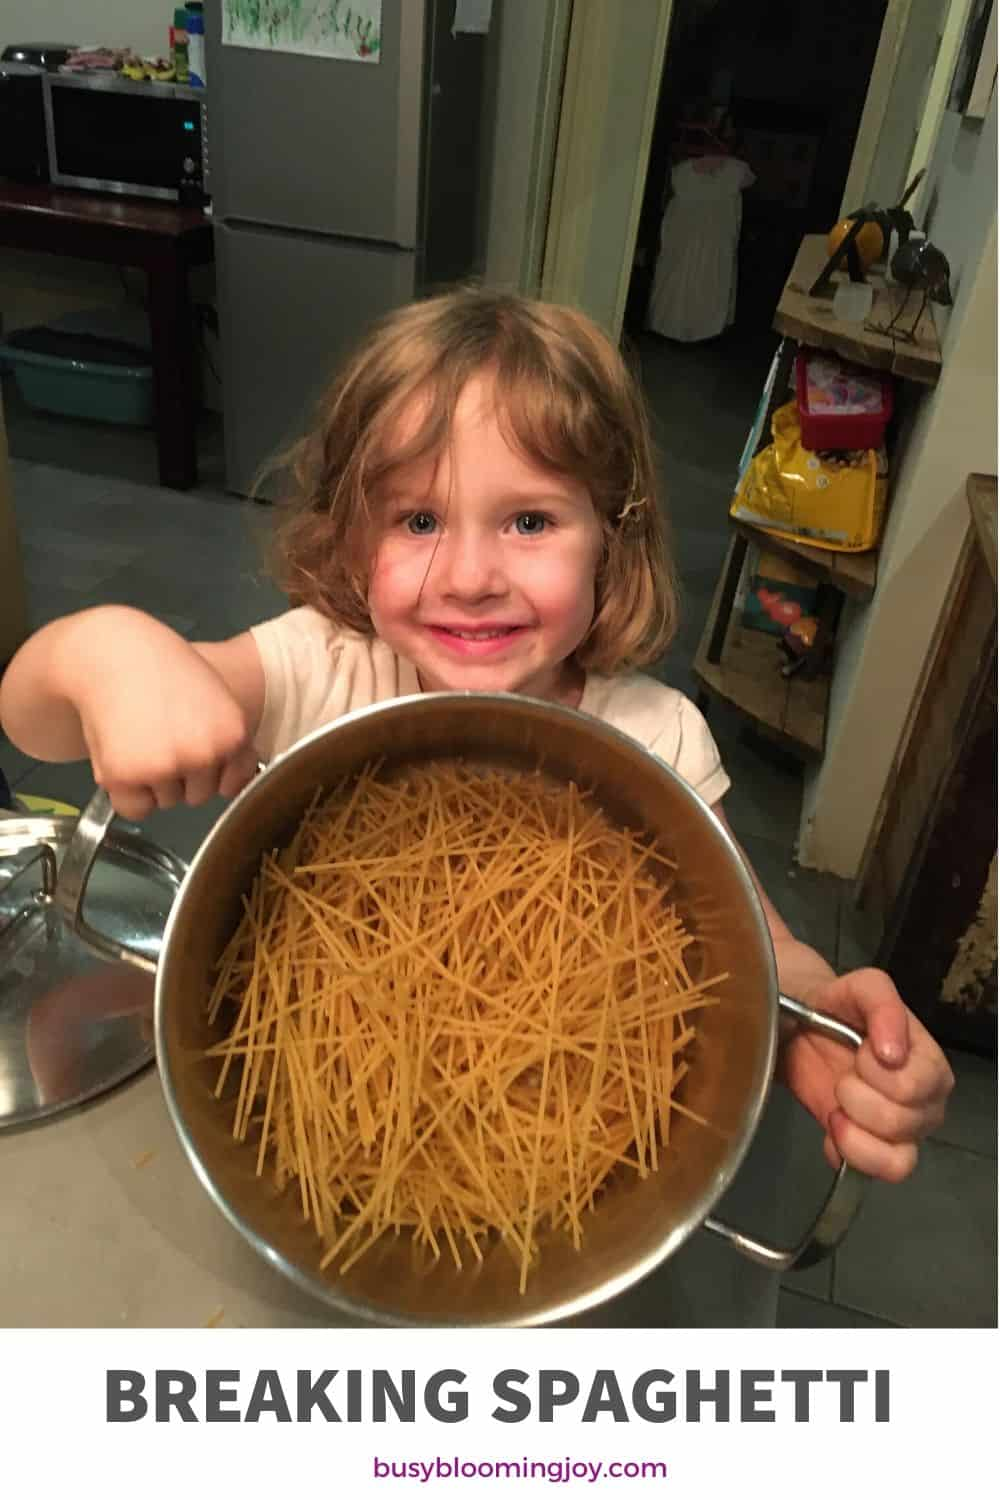 breaking spaghetti - easy toddler activity to try at home